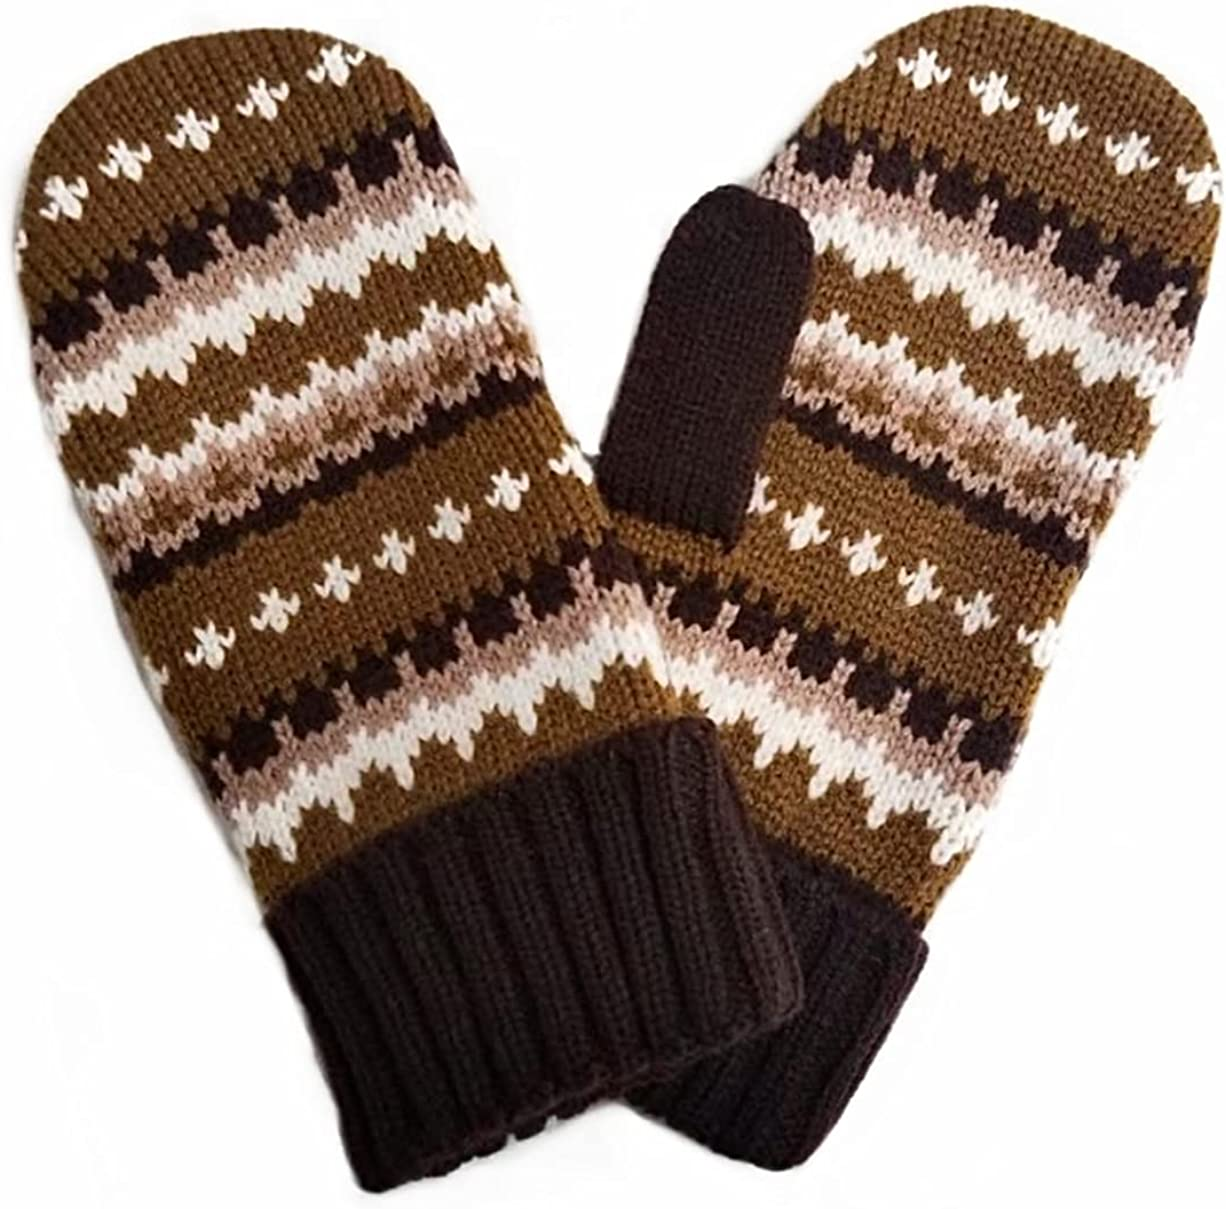 Bernie Sanders Inspired Handcraft Knit Mittens Inauguration Day - Cozy Wool Knit Thick Gloves Novelty Crochet Winter Mittens - Bernie Costume